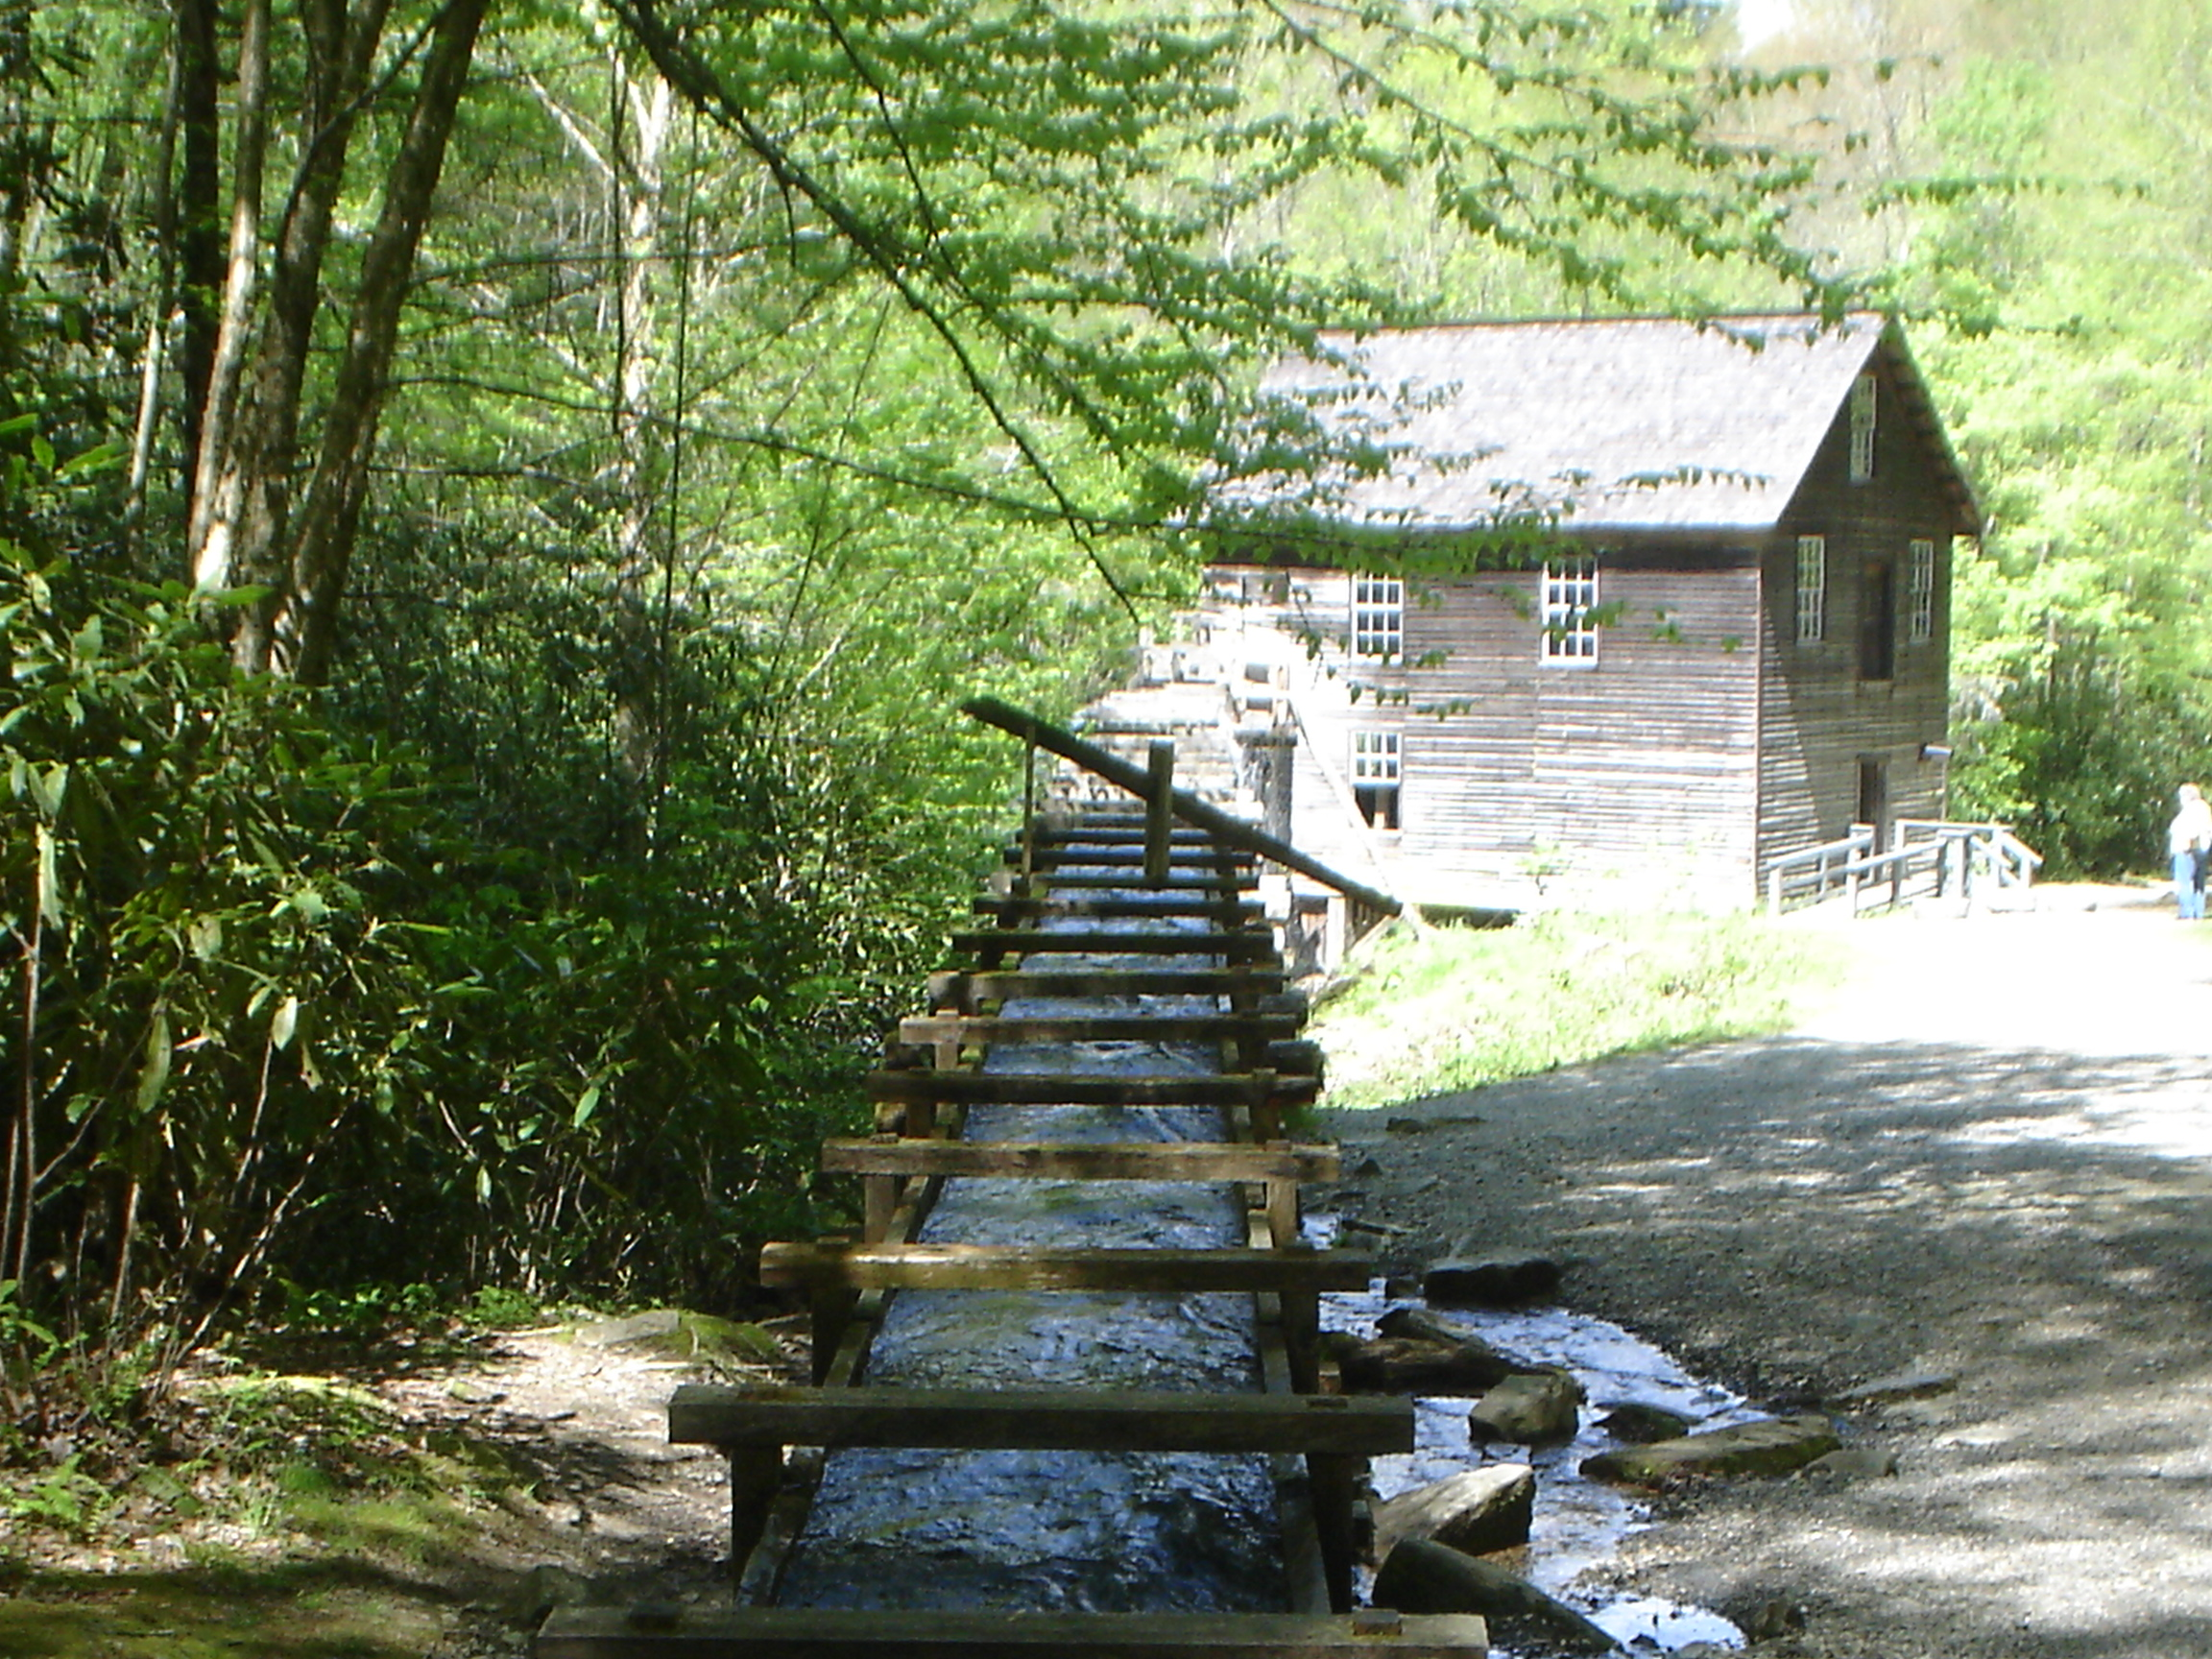 Old Grist Mill in Tennessee